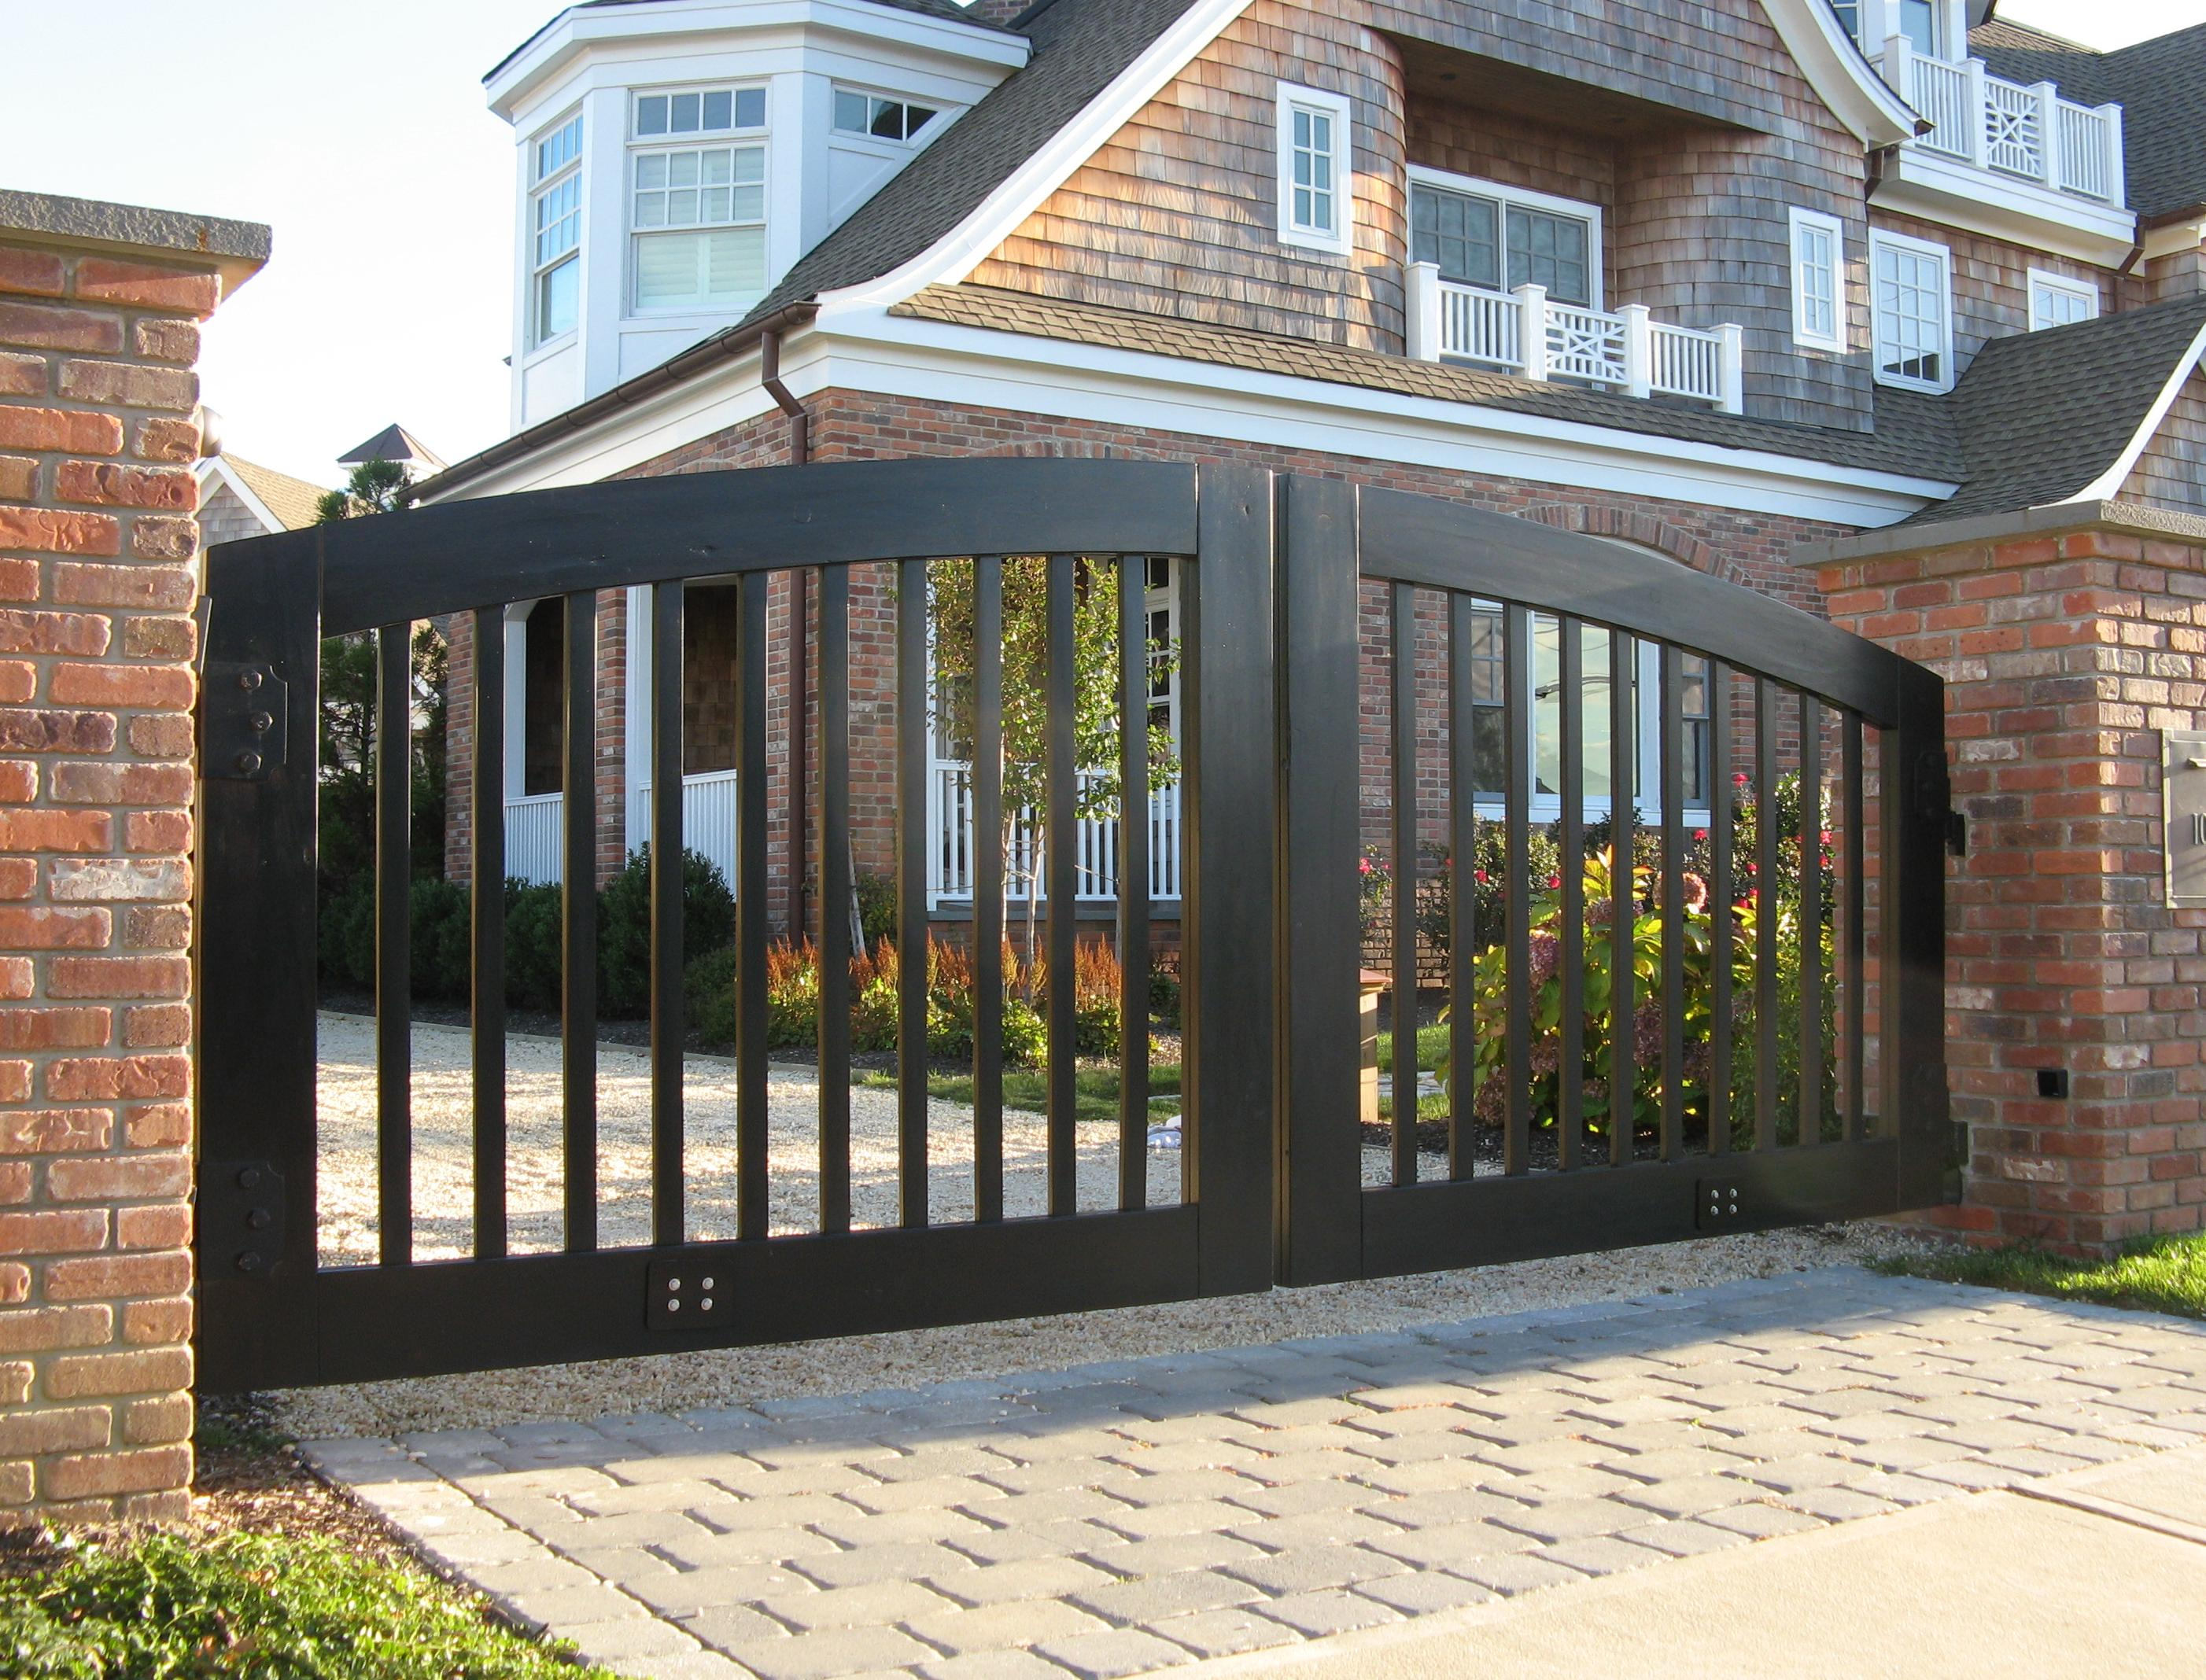 Simple front gate designs for houses joy studio design for Home gate design